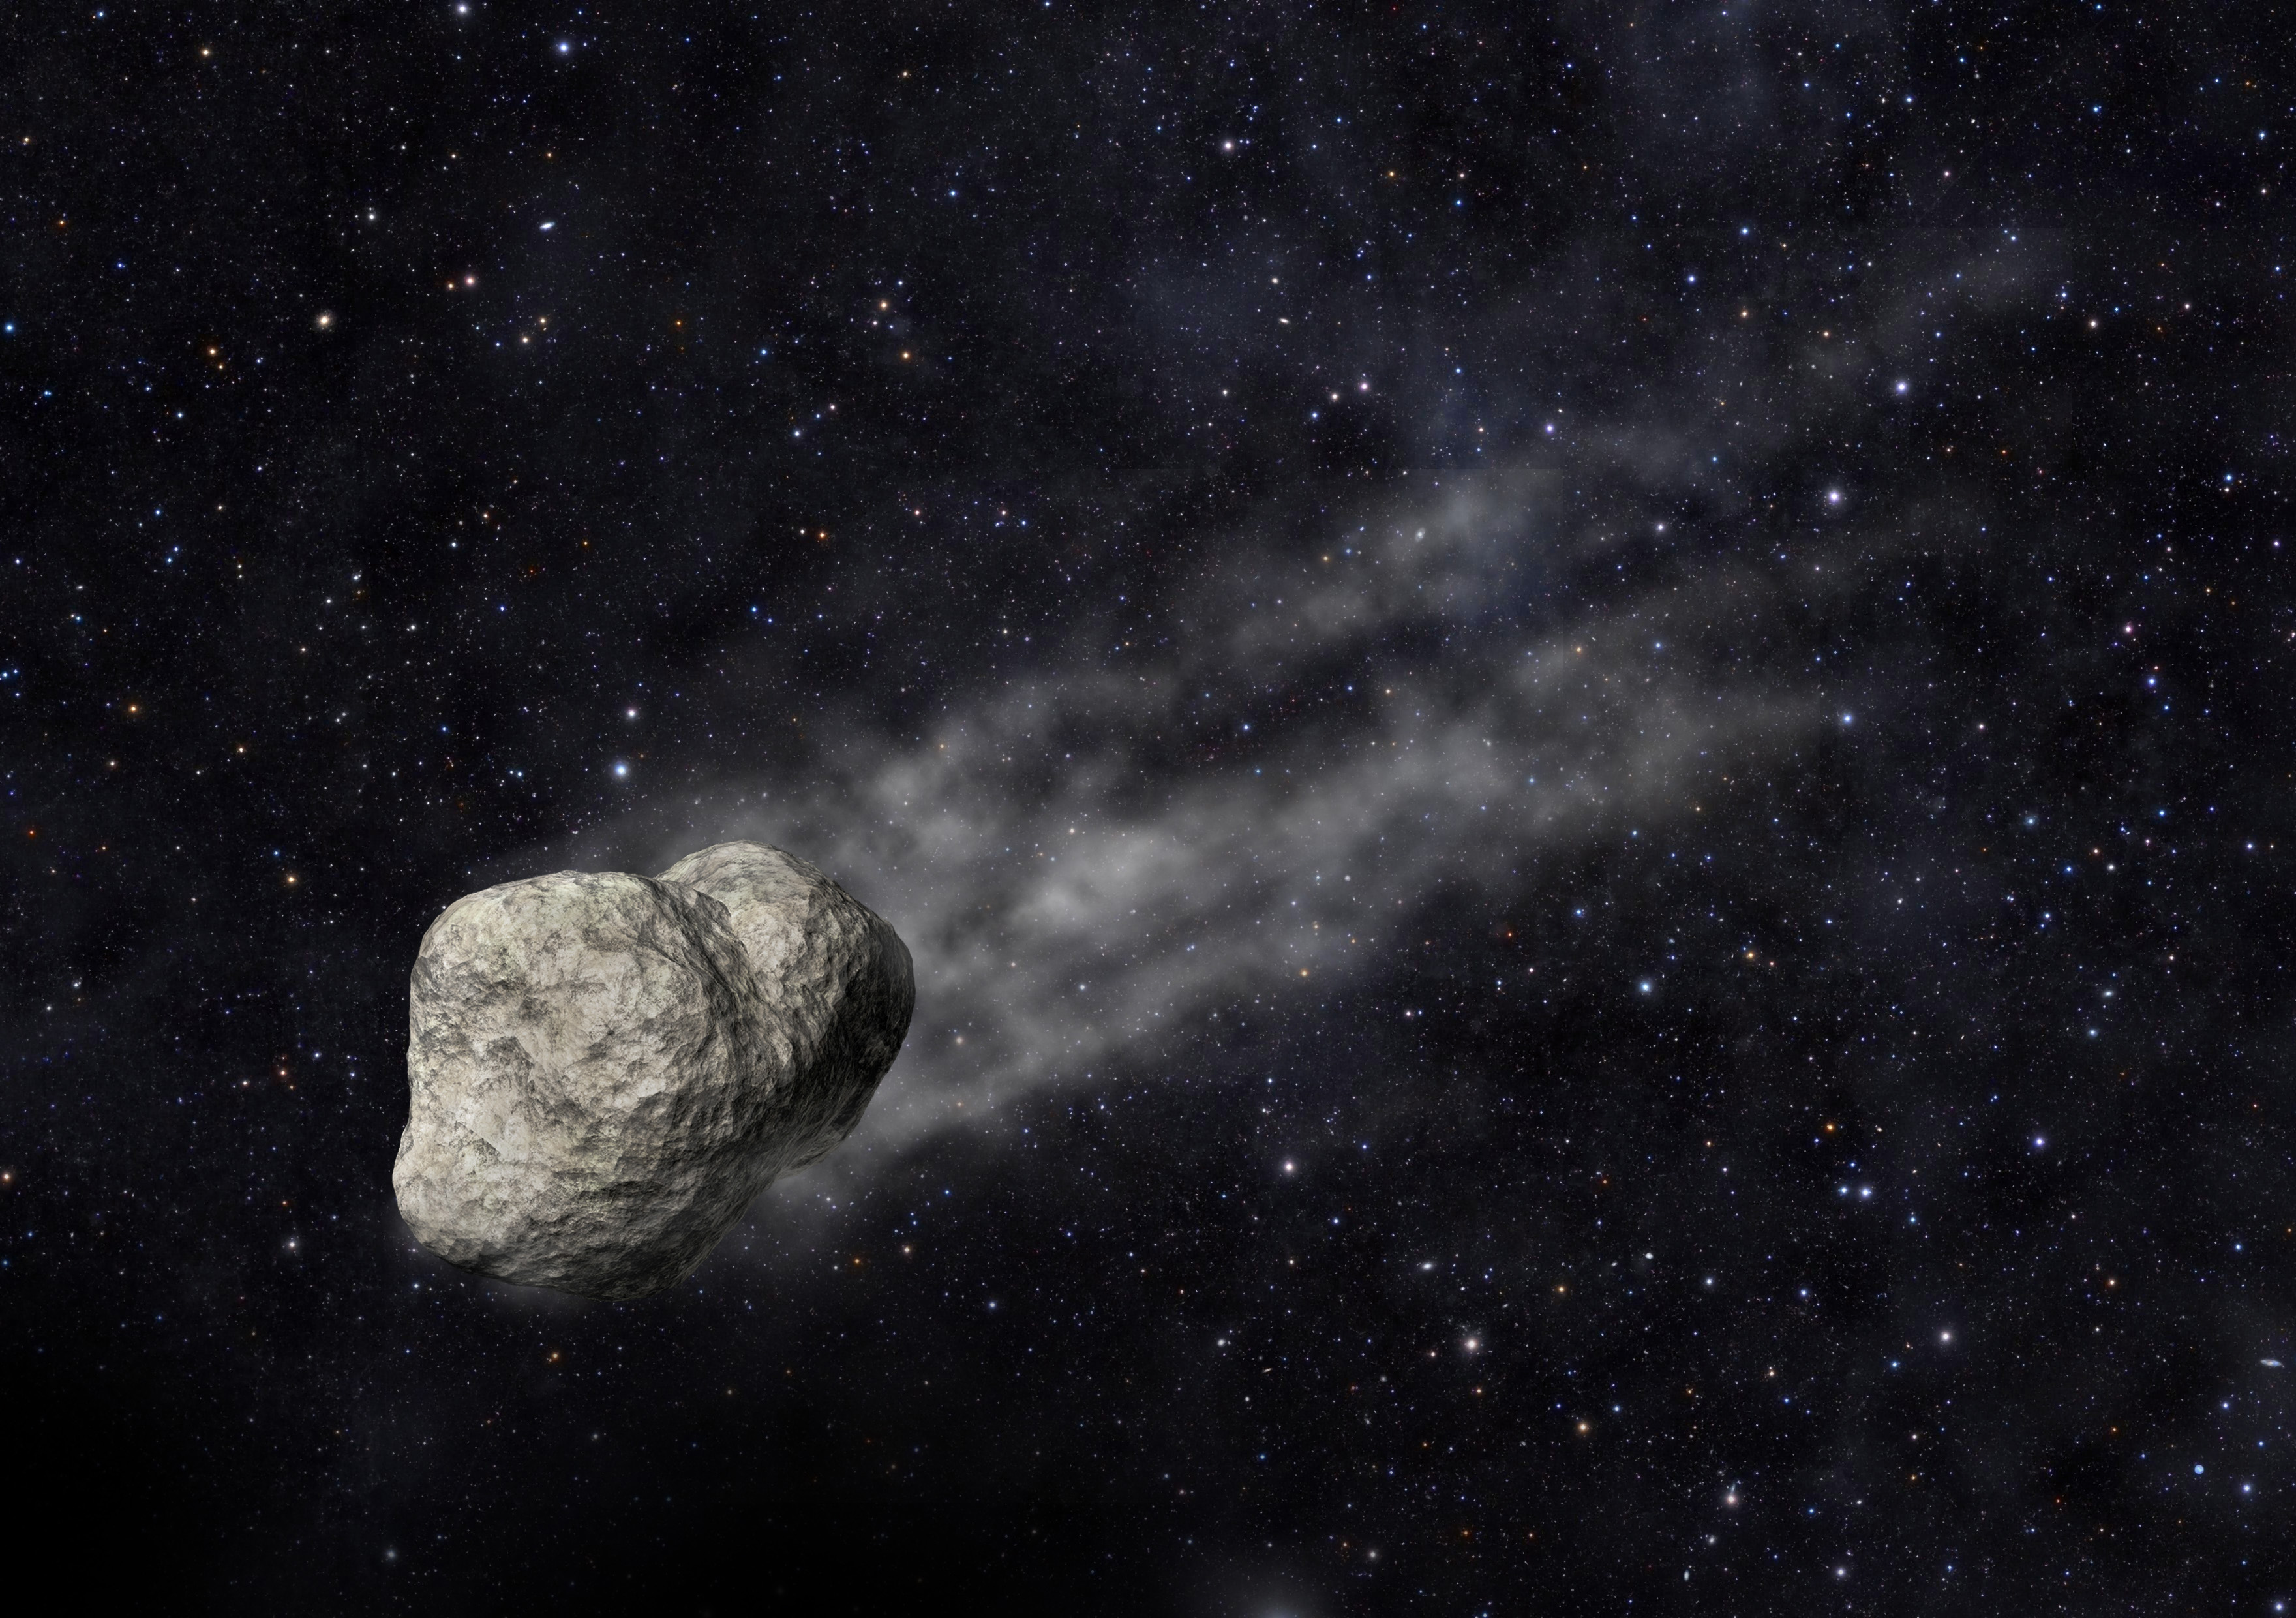 Asteroid with Comet-like Tail from Hygiea Family Discovered